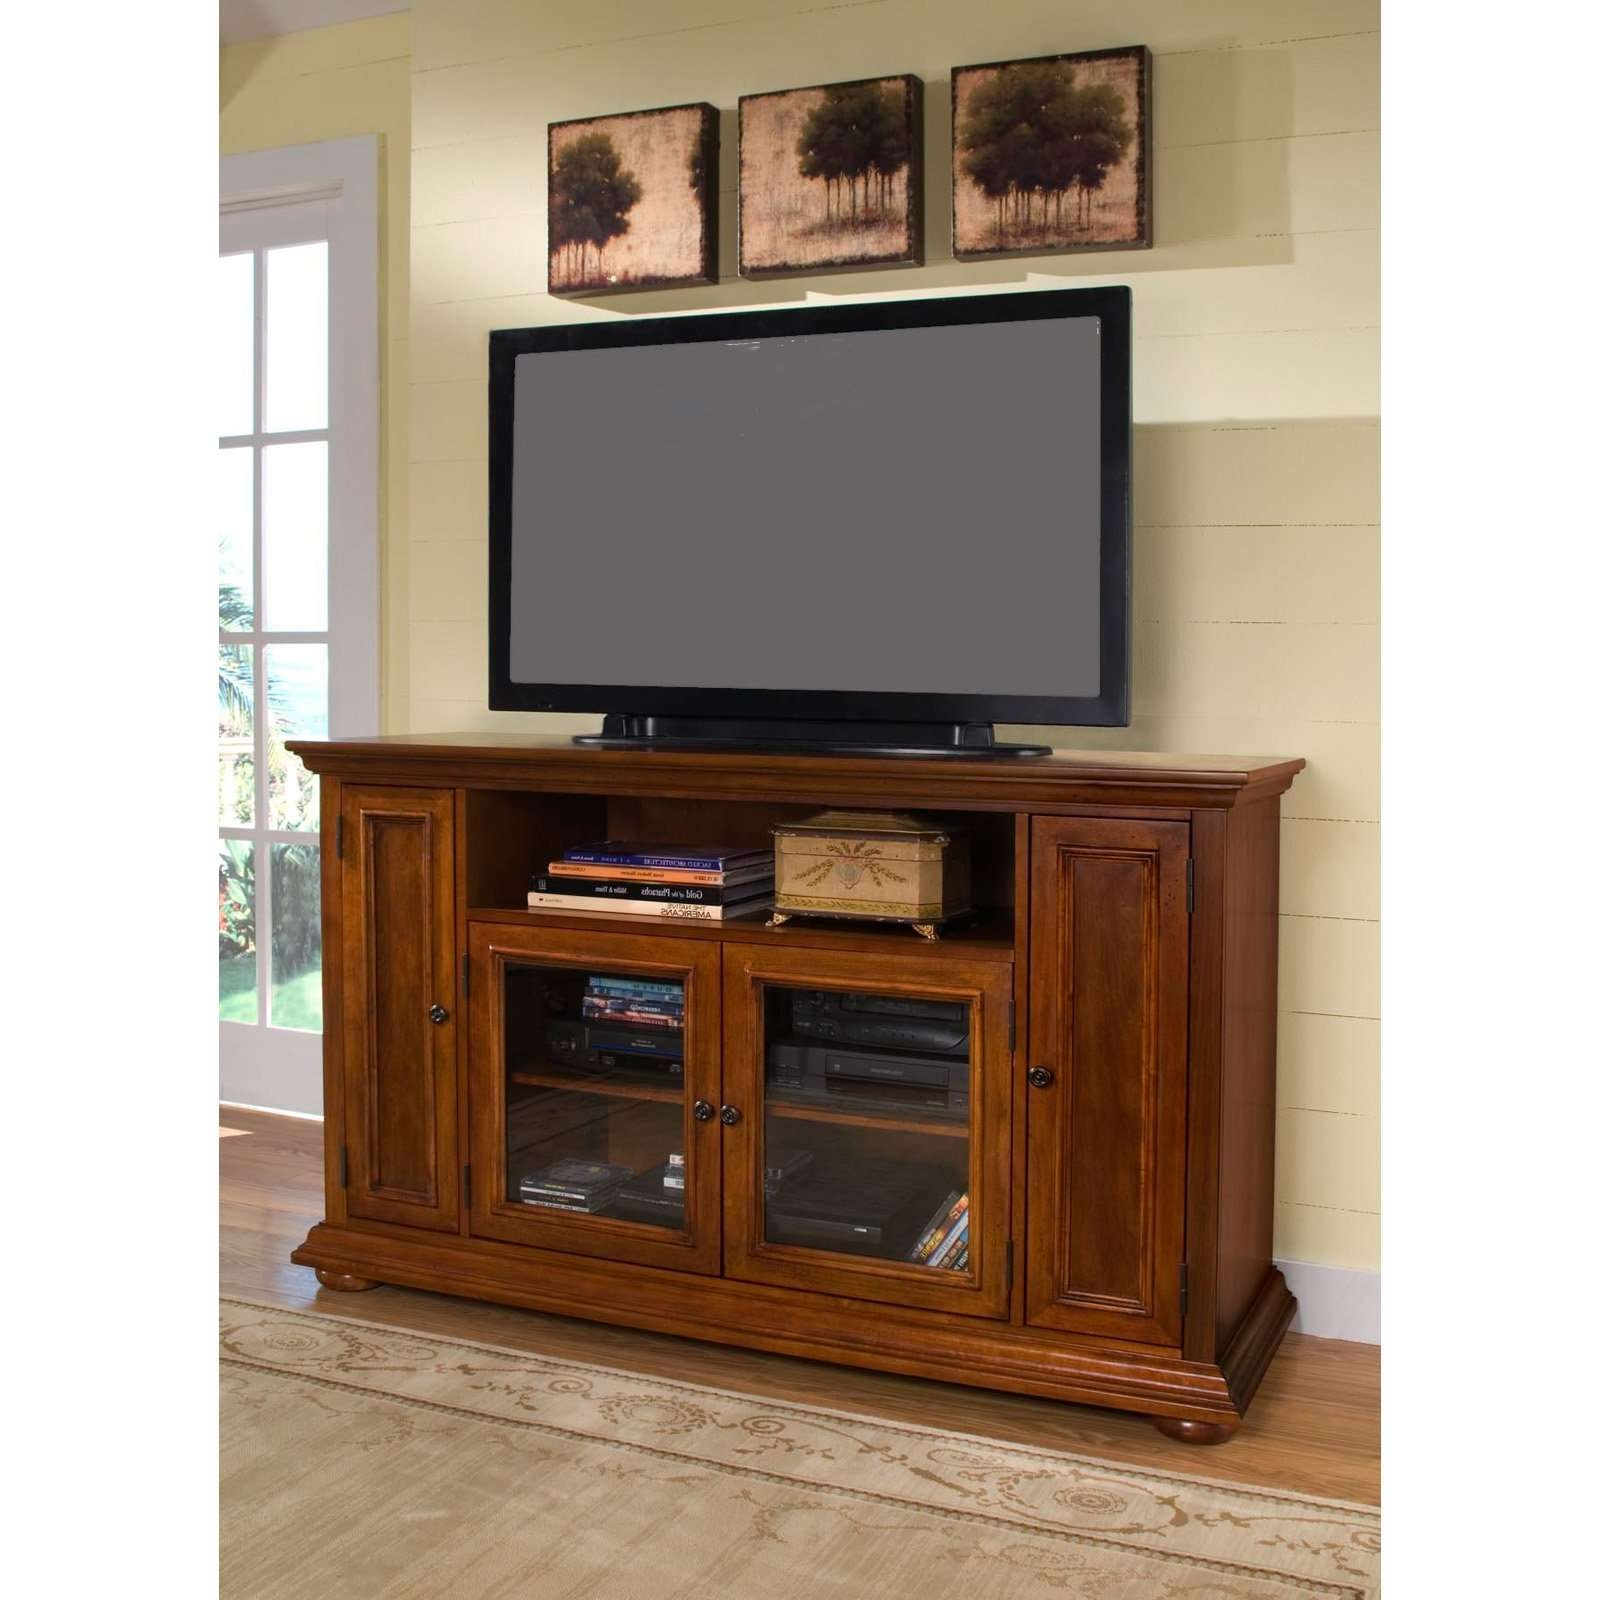 Home Decor: Marvelous Wood Tv Stands For Flat Screens Plus Light In Light Oak Tv Stands Flat Screen (View 9 of 15)